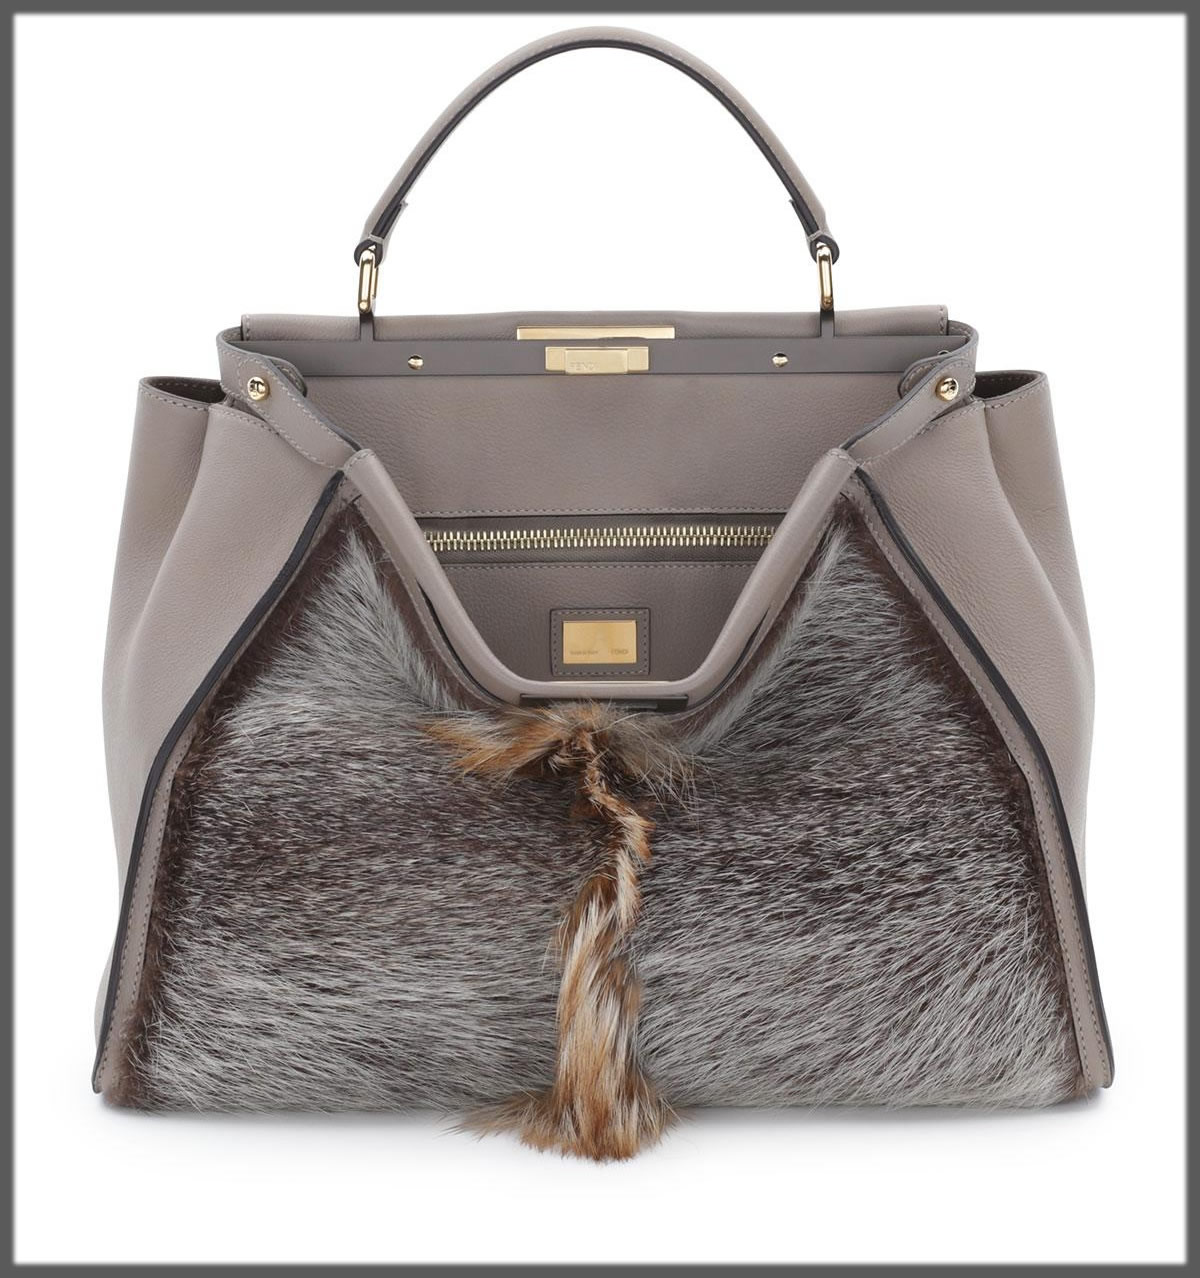 Hilde Palladino Internationa Branded Handbags